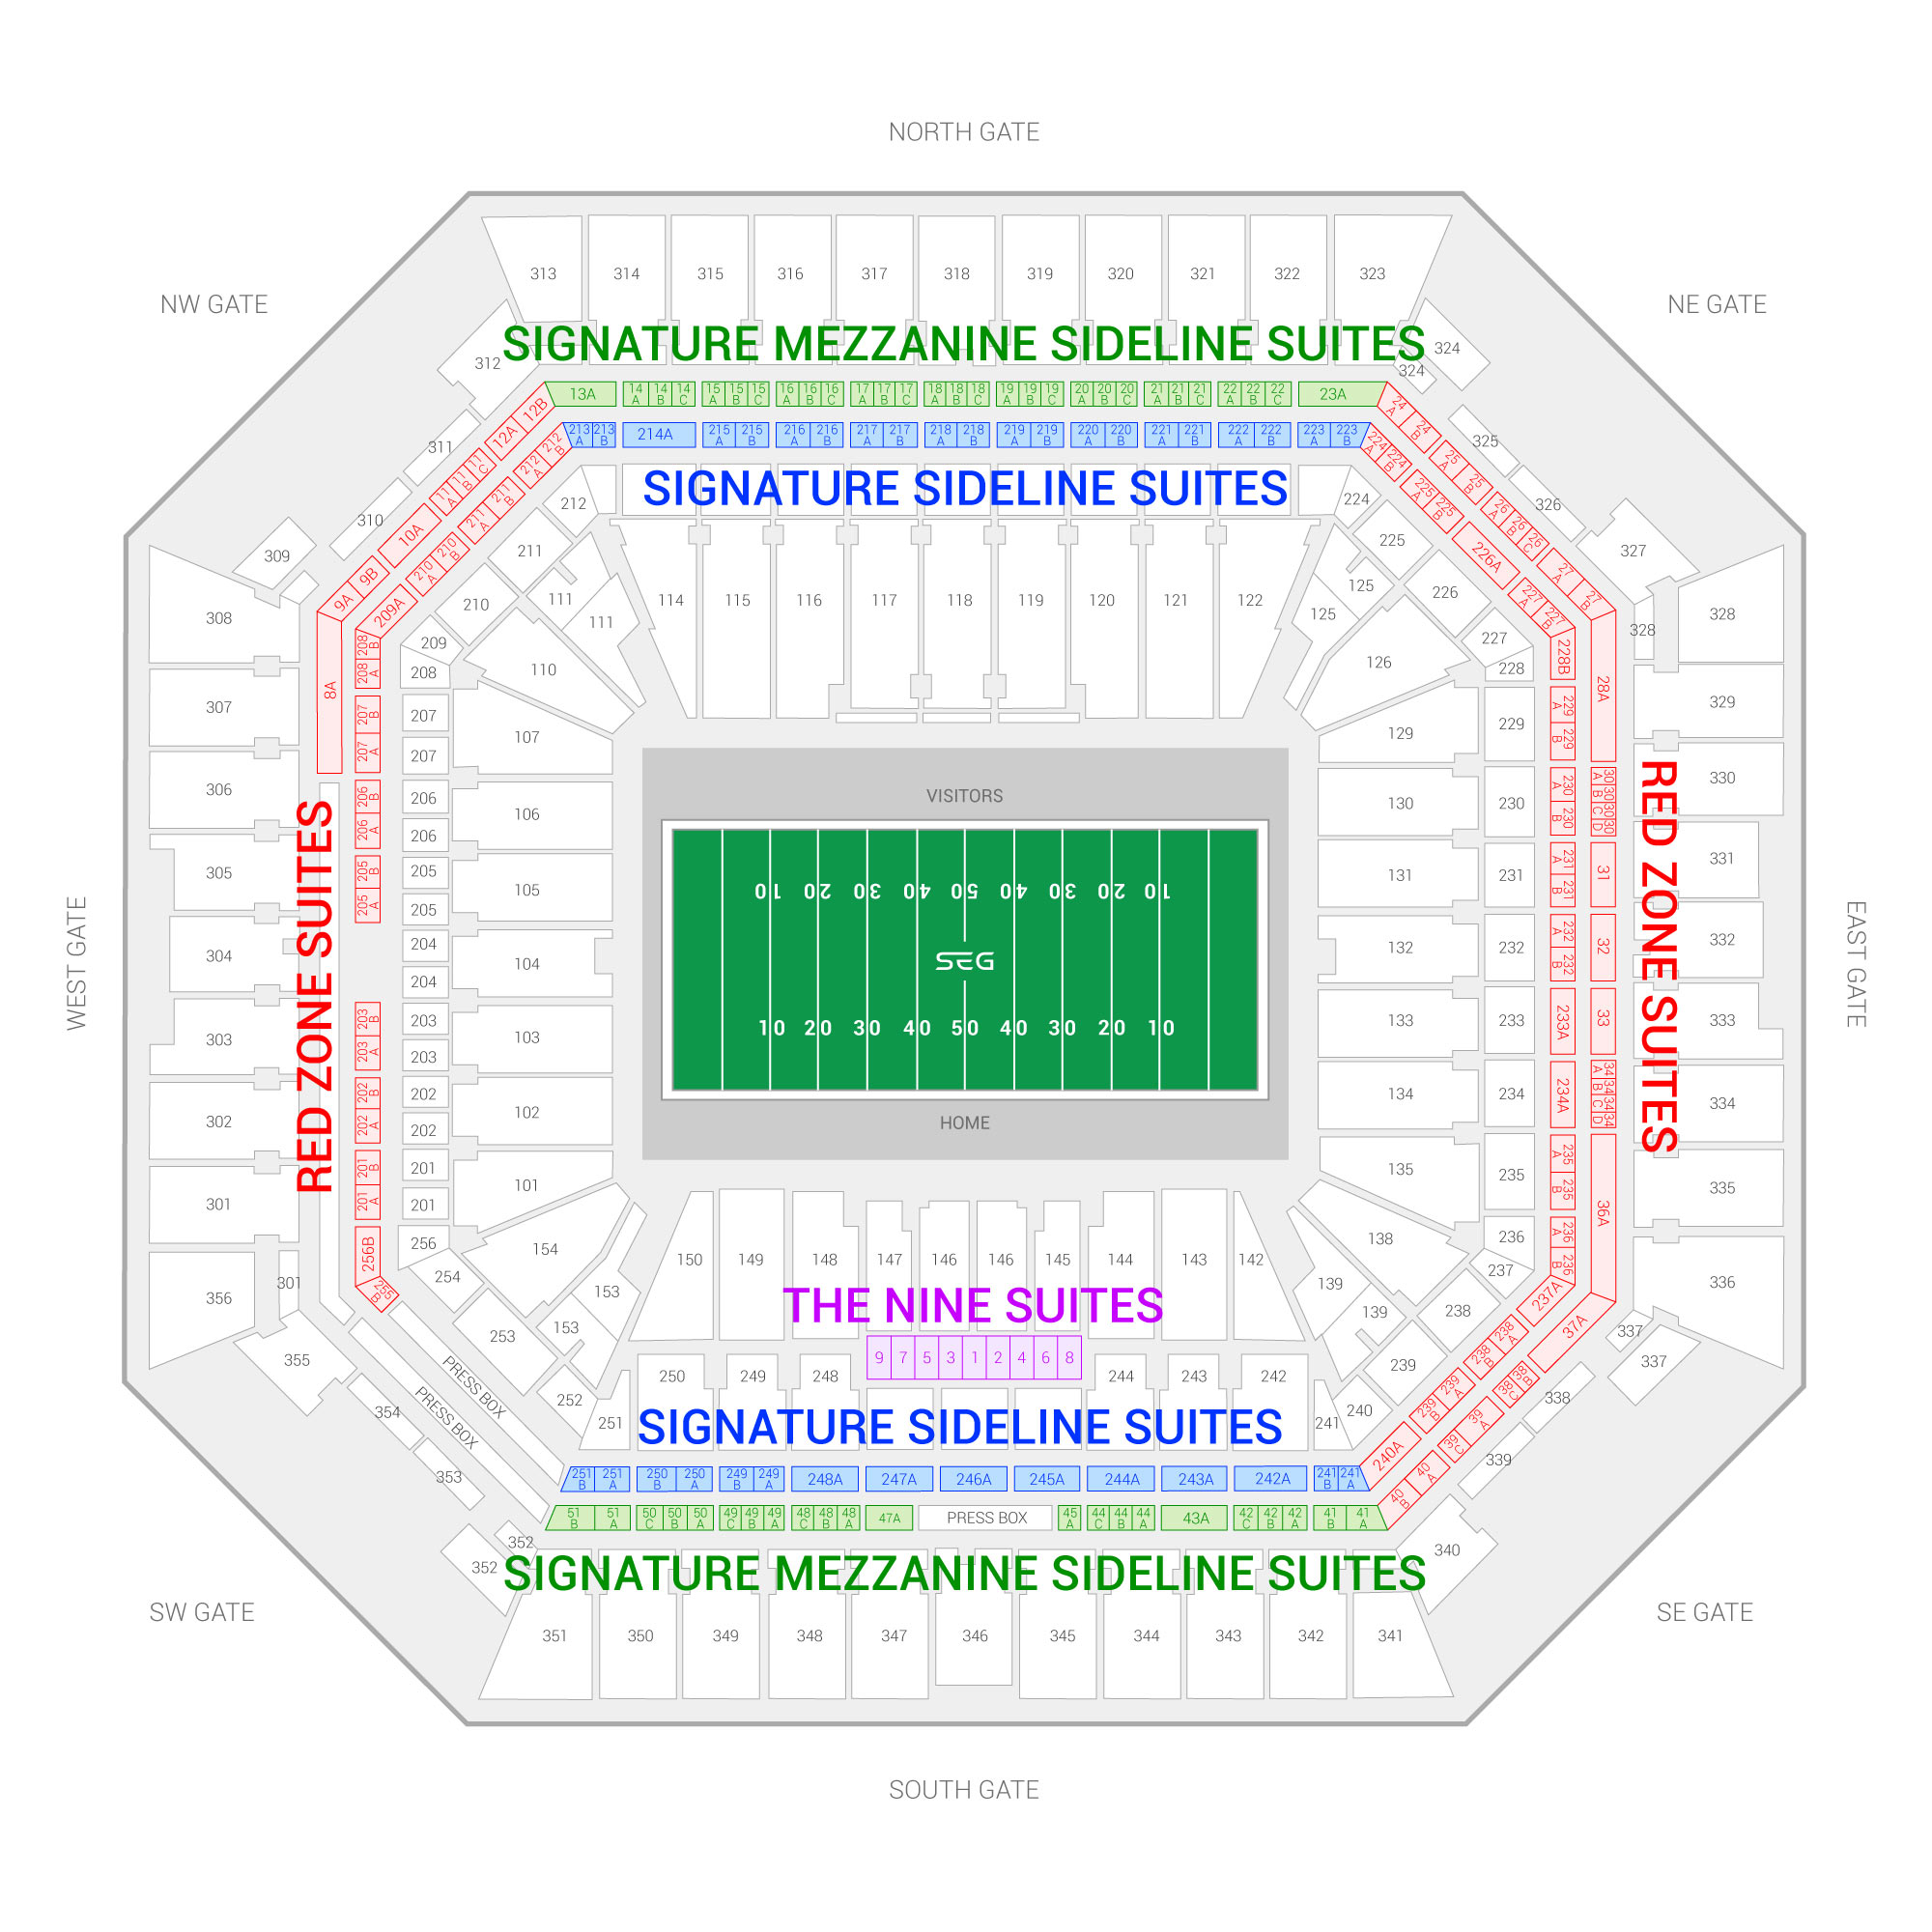 Hard Rock Stadium / Capital One Orange Bowl Suite Map and Seating Chart